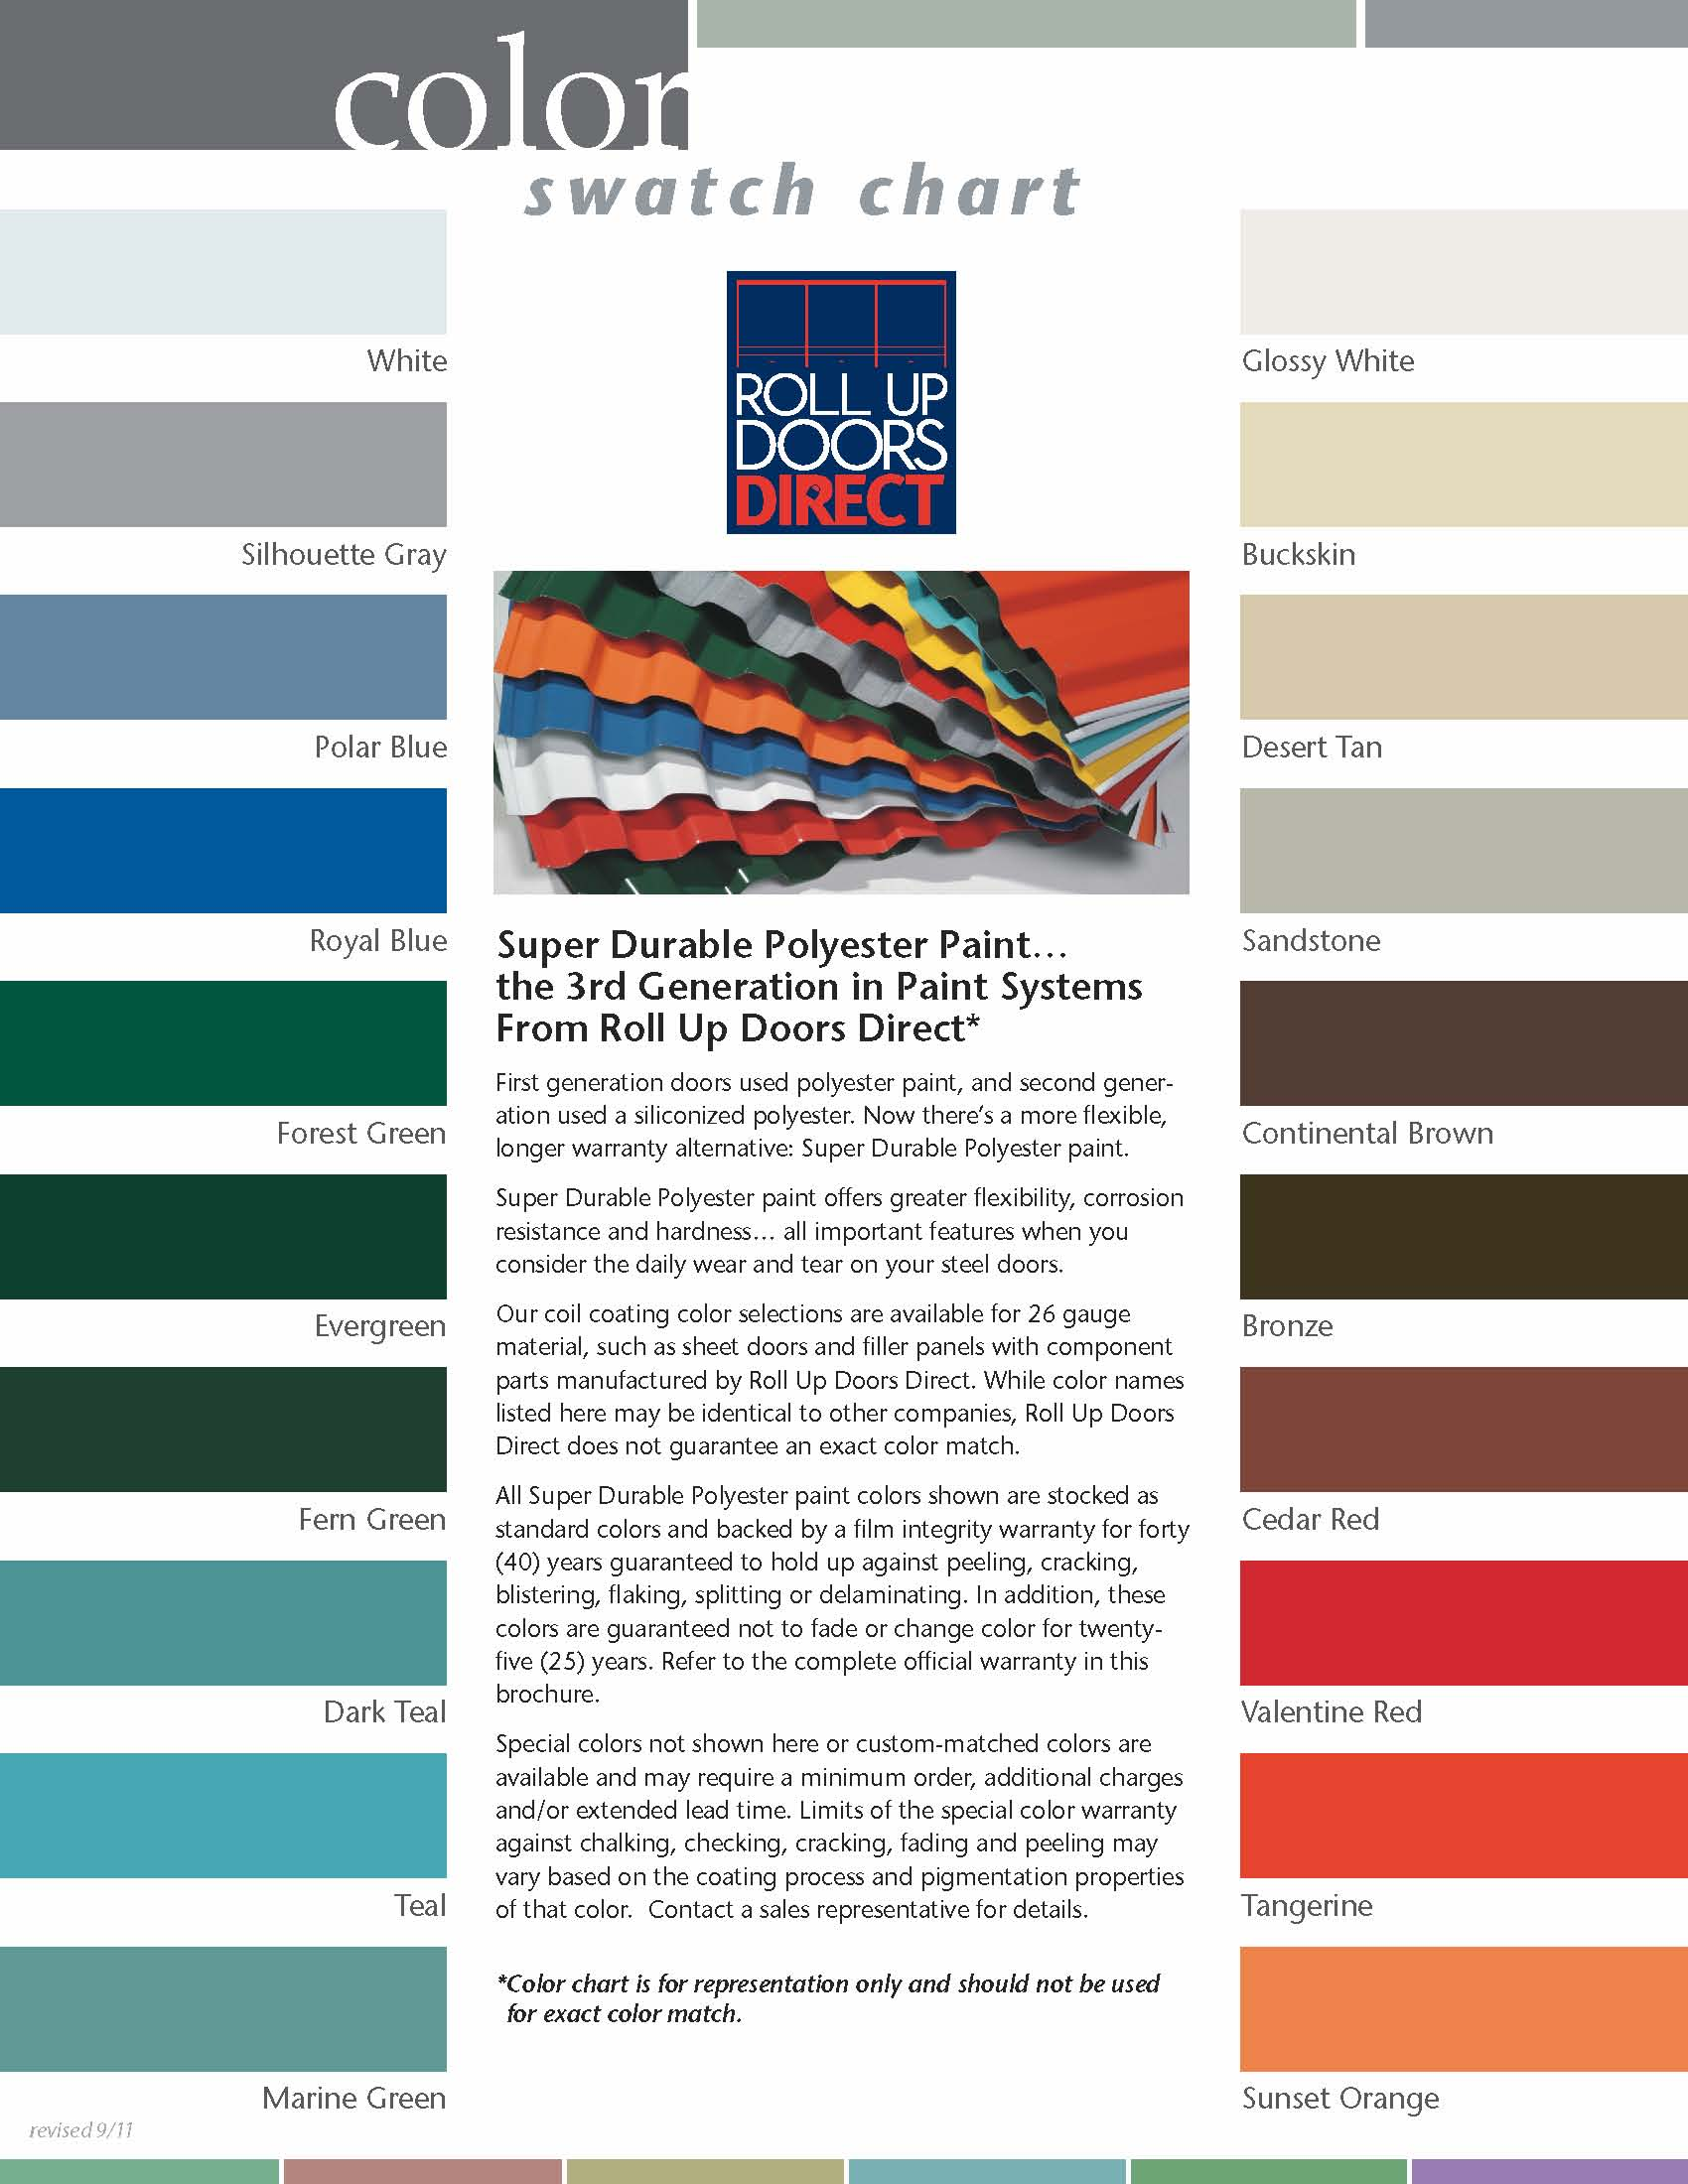 What colors are roll up doors avaliable in for 12x12 roll up garage door